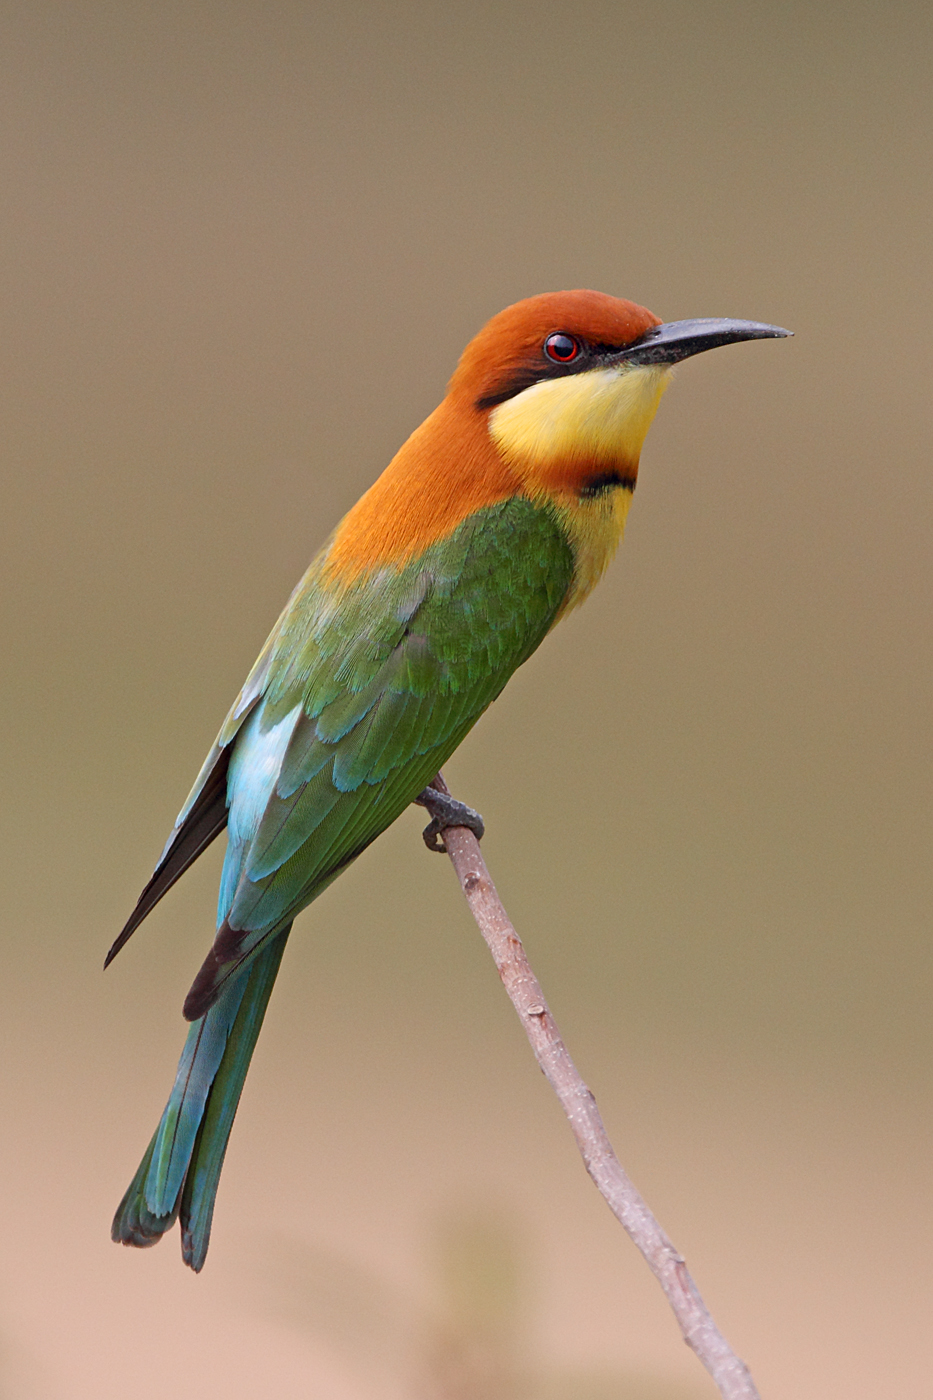 Chestnut-headed Bee-eaters nesting in Penang - photo#10